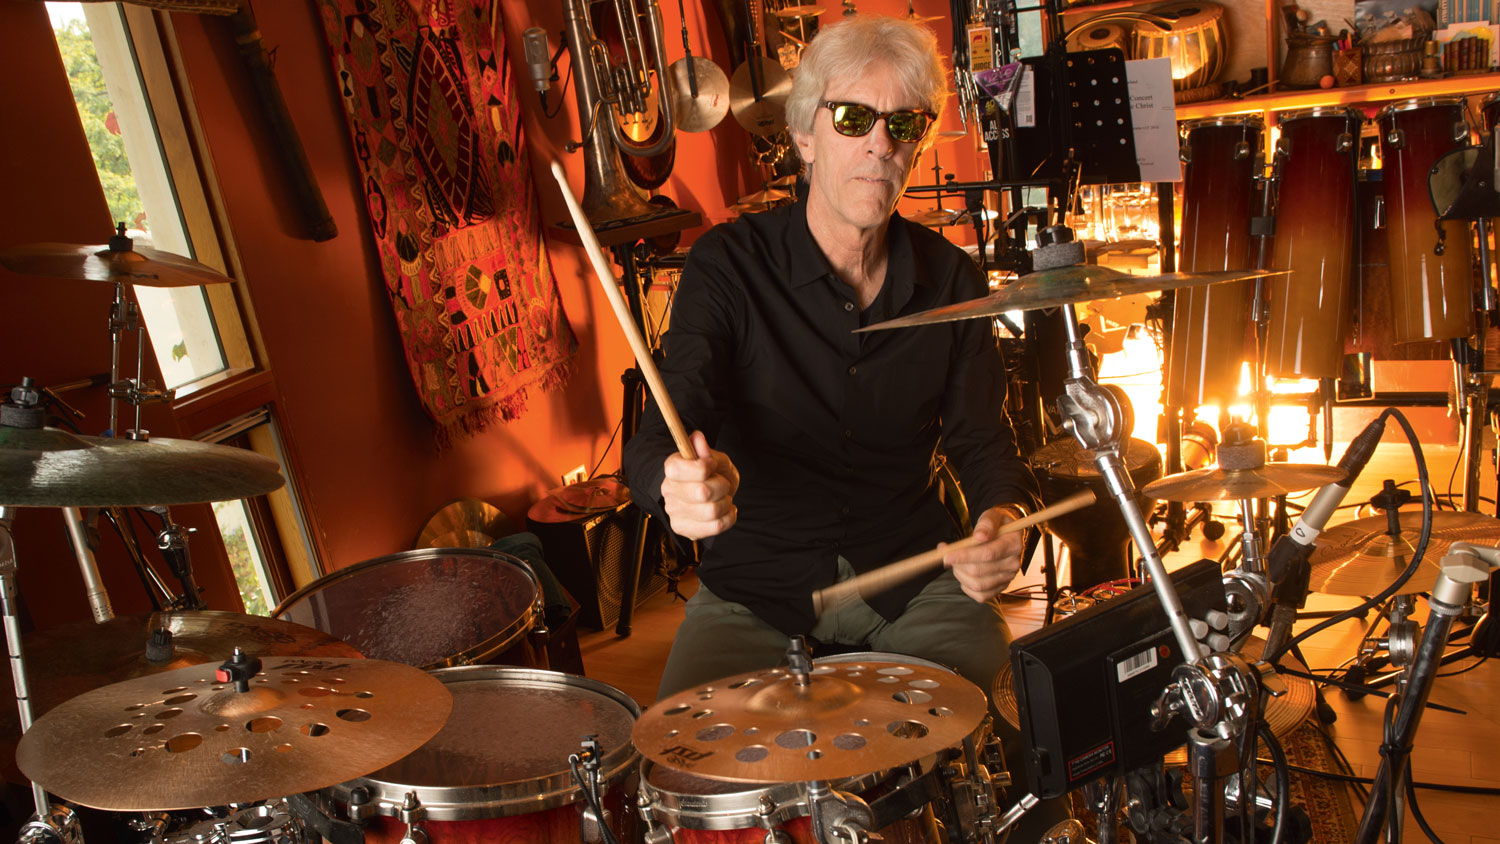 Stewart Copeland on his Police career: